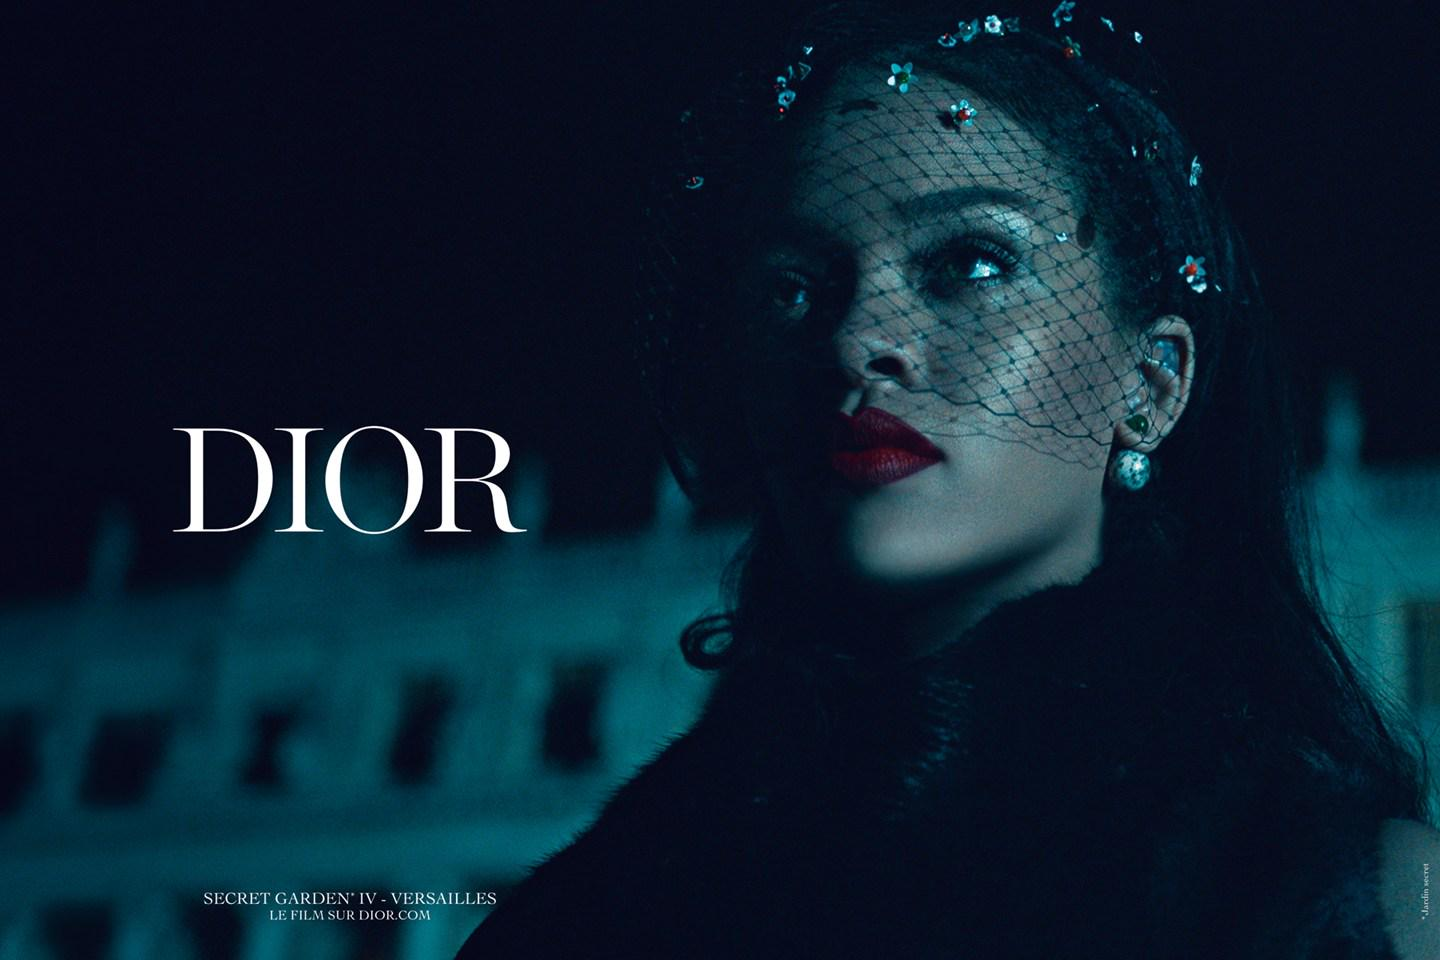 Running, dancing and just a little of her signature attitude - @rihanna for @dior uncut: http://t.co/BAoiYyjaZa http://t.co/xp2MVJi1hS